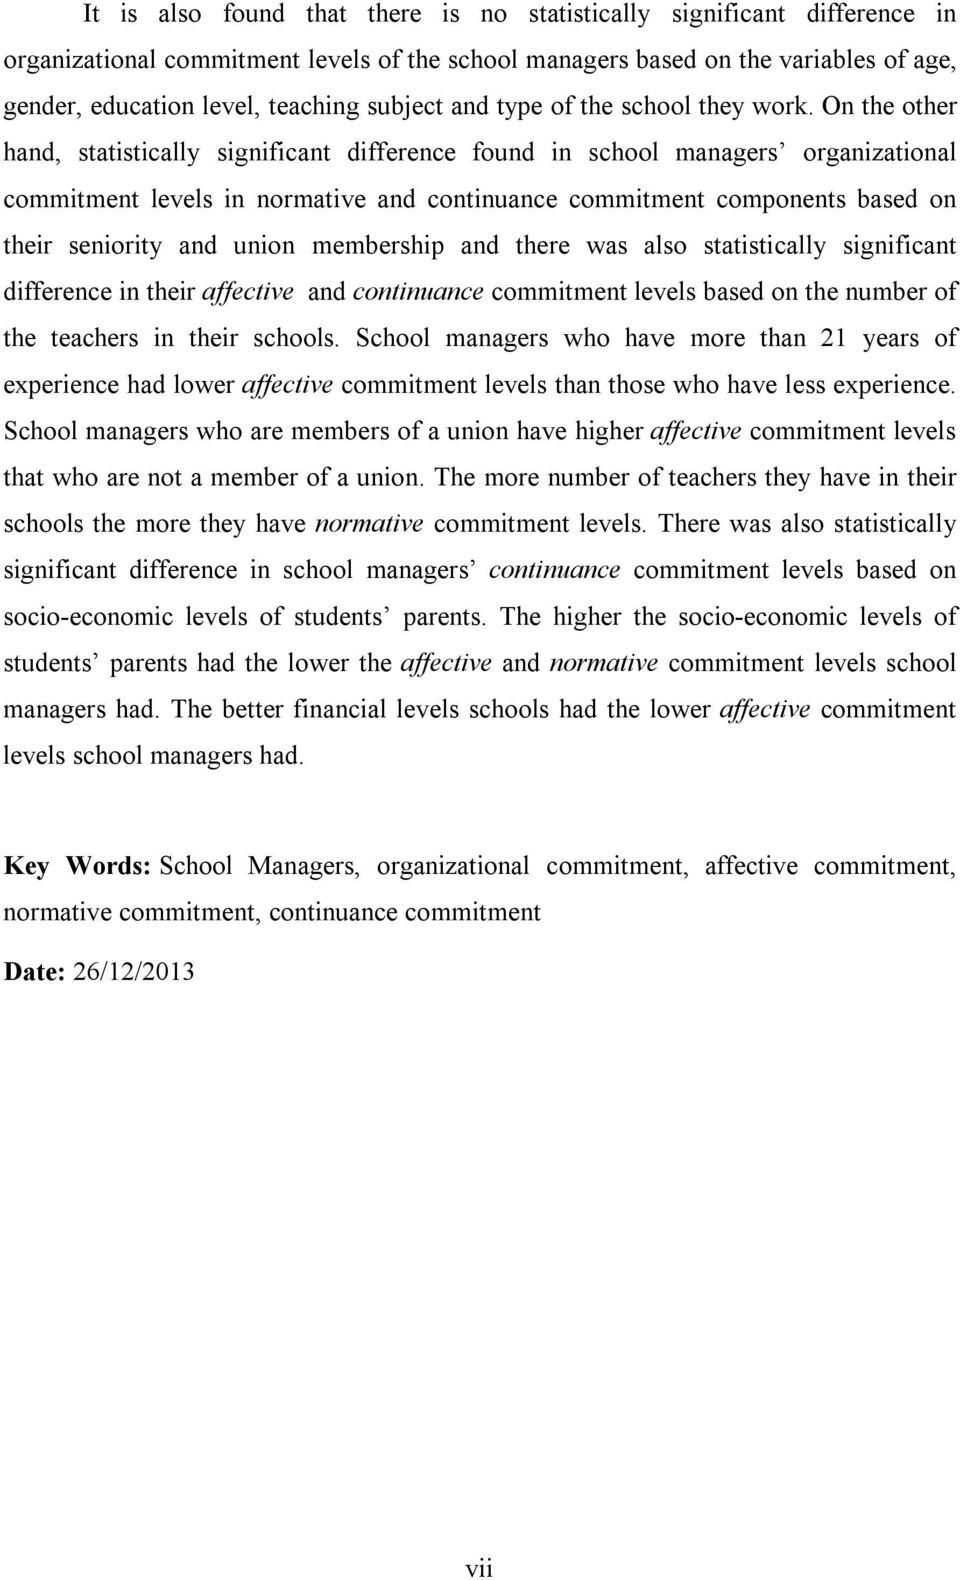 On the other hand, statistically significant difference found in school managers organizational commitment levels in normative and continuance commitment components based on their seniority and union